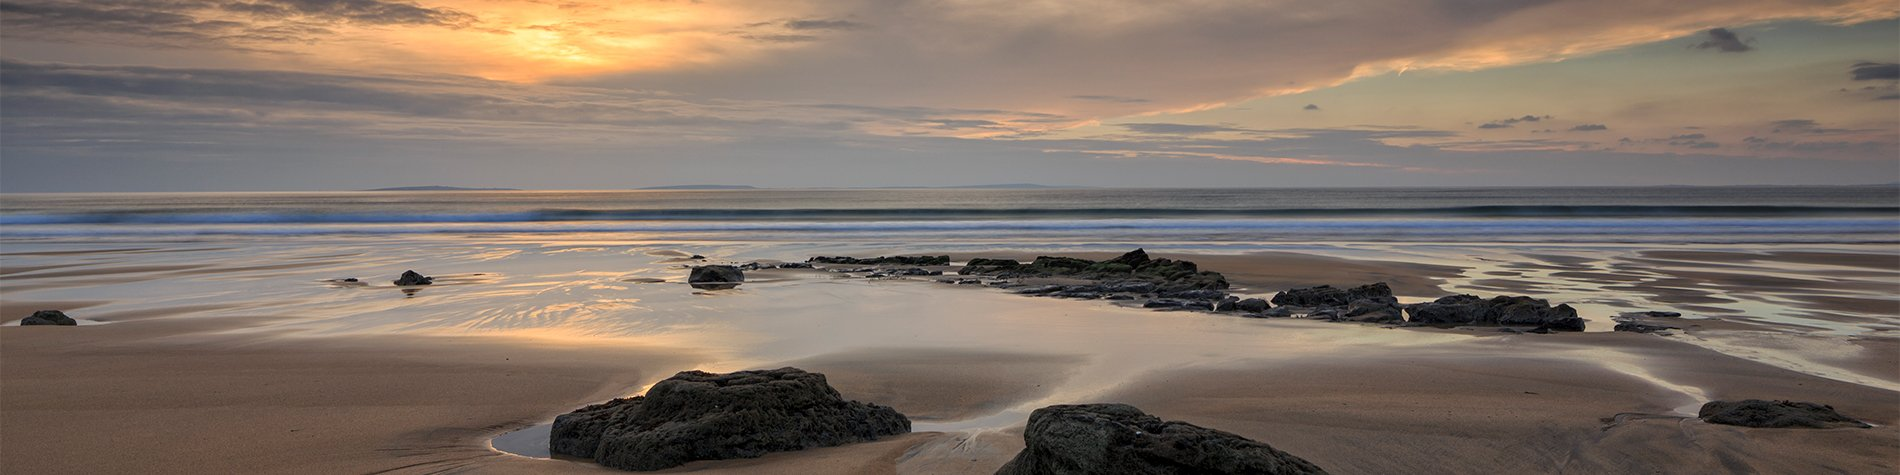 Fanore Beach sun set - Ireland's best beaches to Visit on Your Group Trip